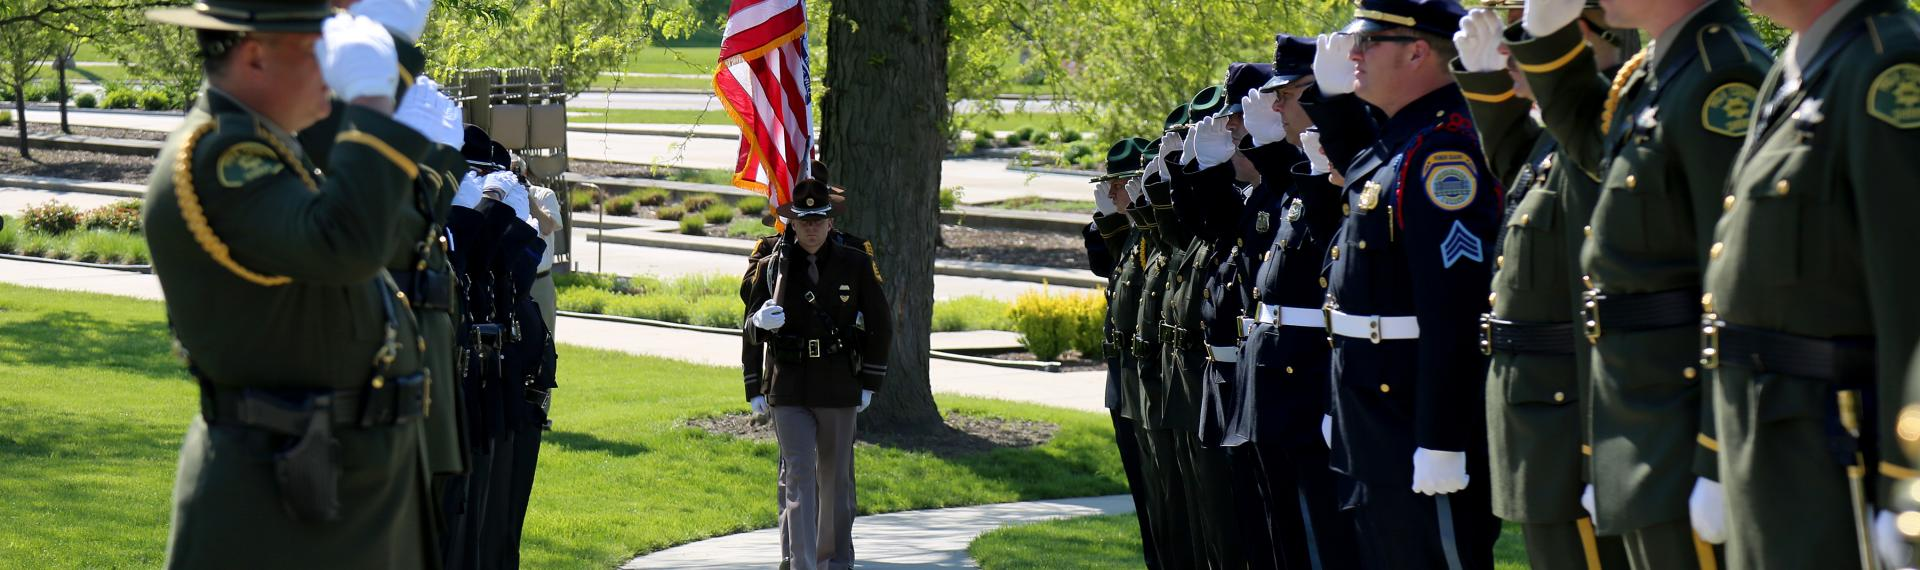 Photo of Iowa State Patrol Honor Guard marching up the sidewalk lined with Iowa law enforcement officers to the Peace Officer Memorial during a ceremony.